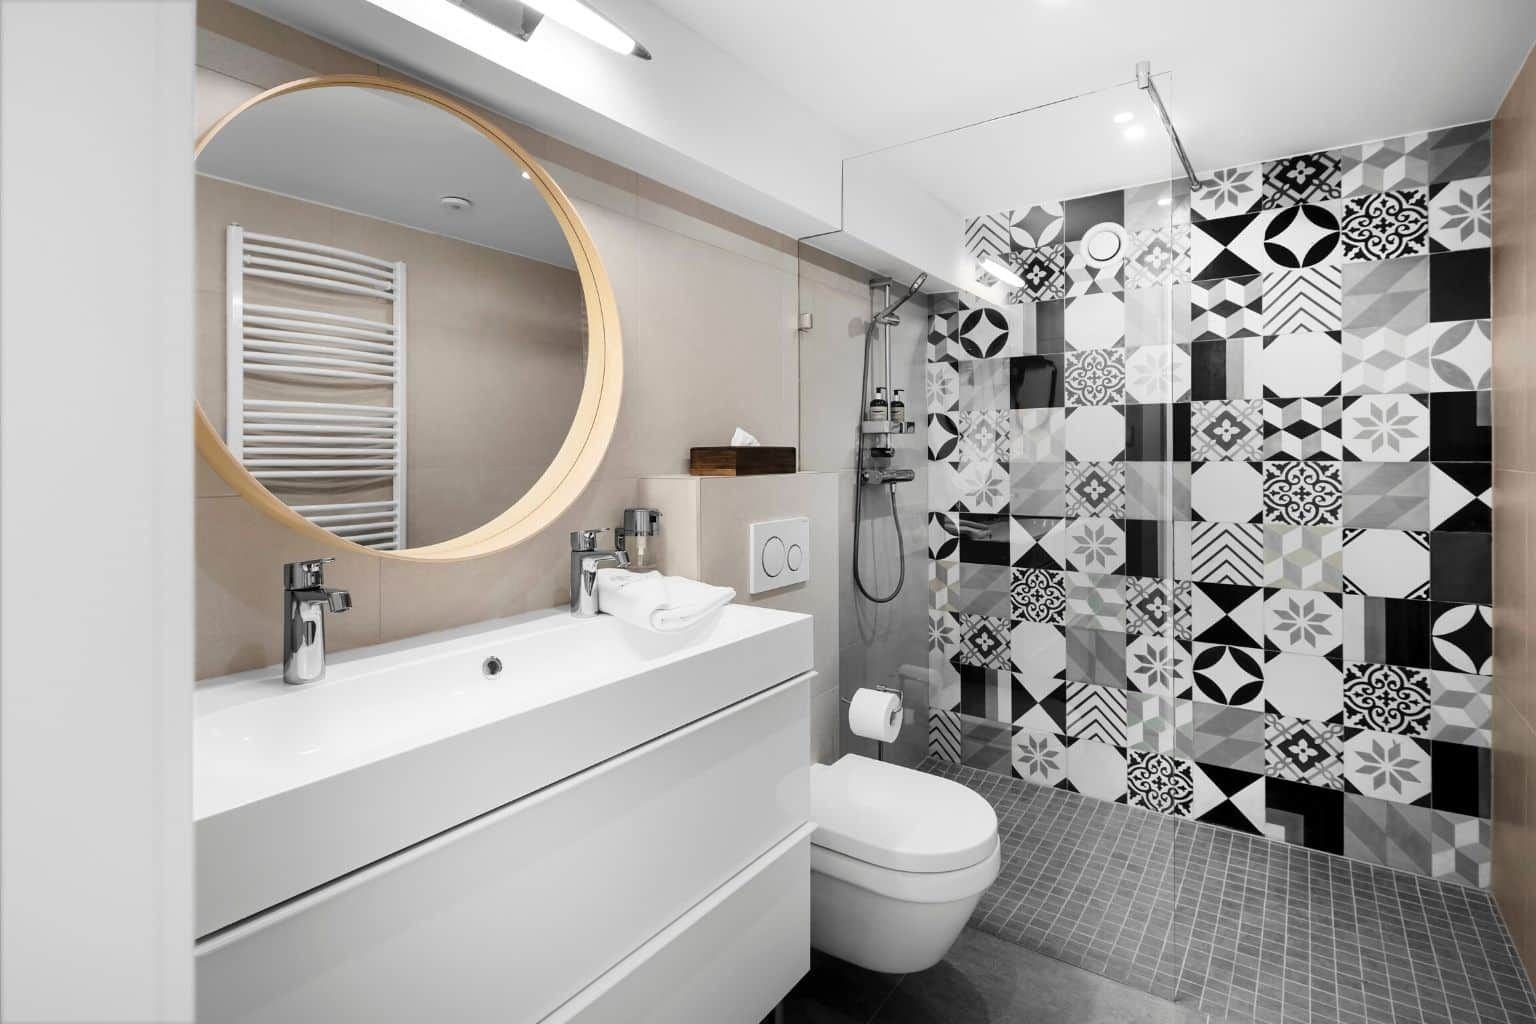 All of our bathrooms are covered with Moza handmade tiles